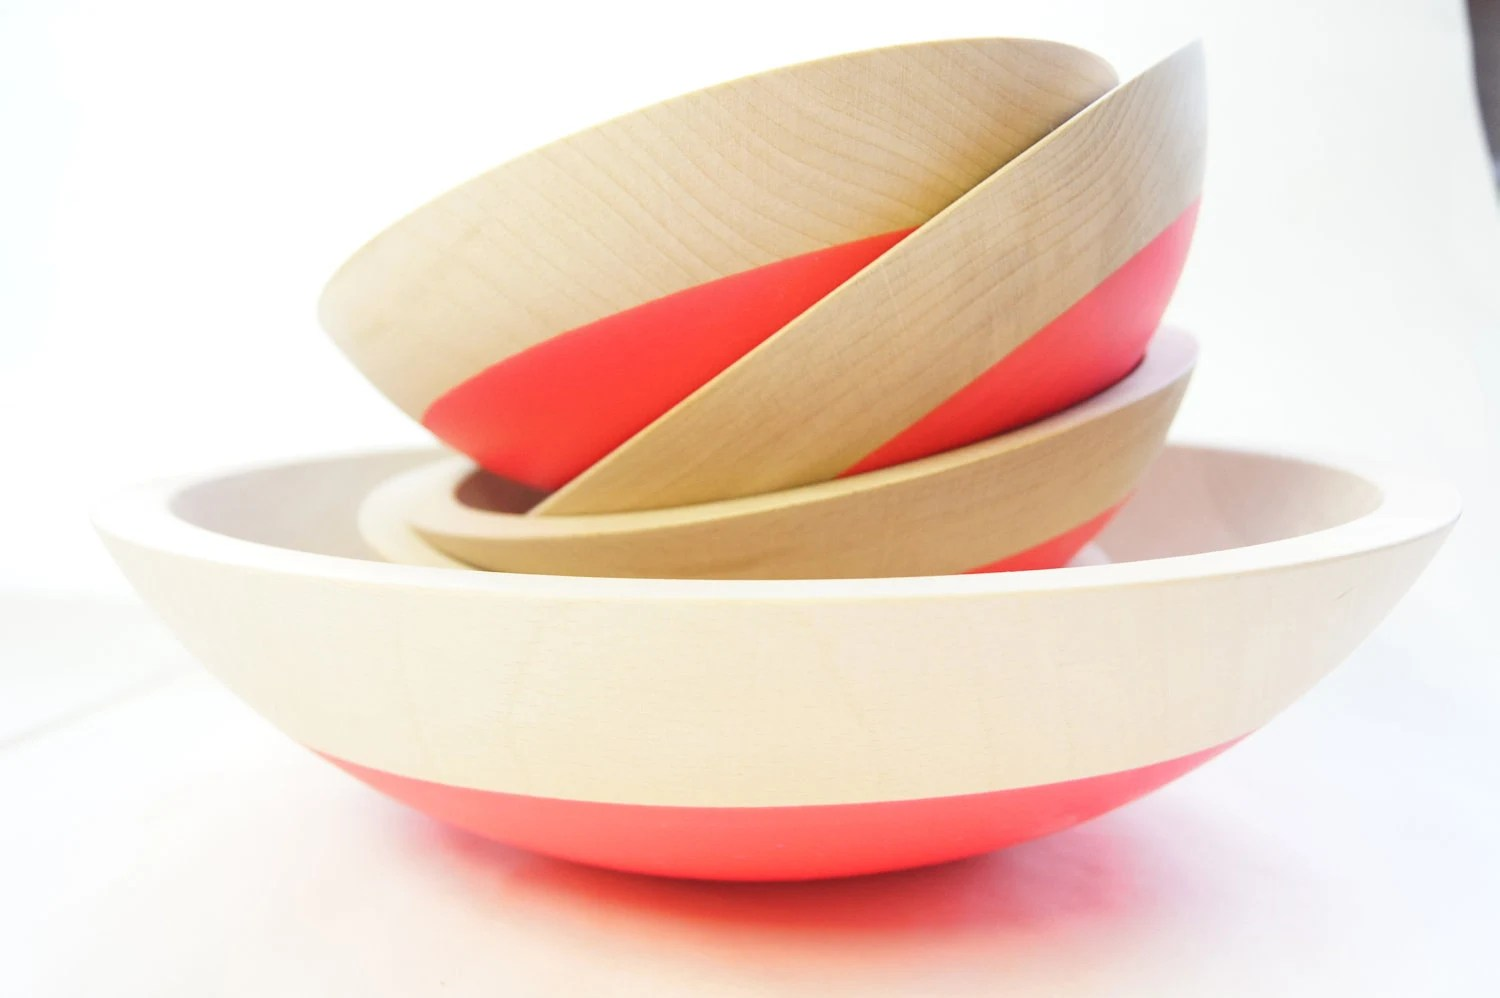 Neon dipped nesting bowls